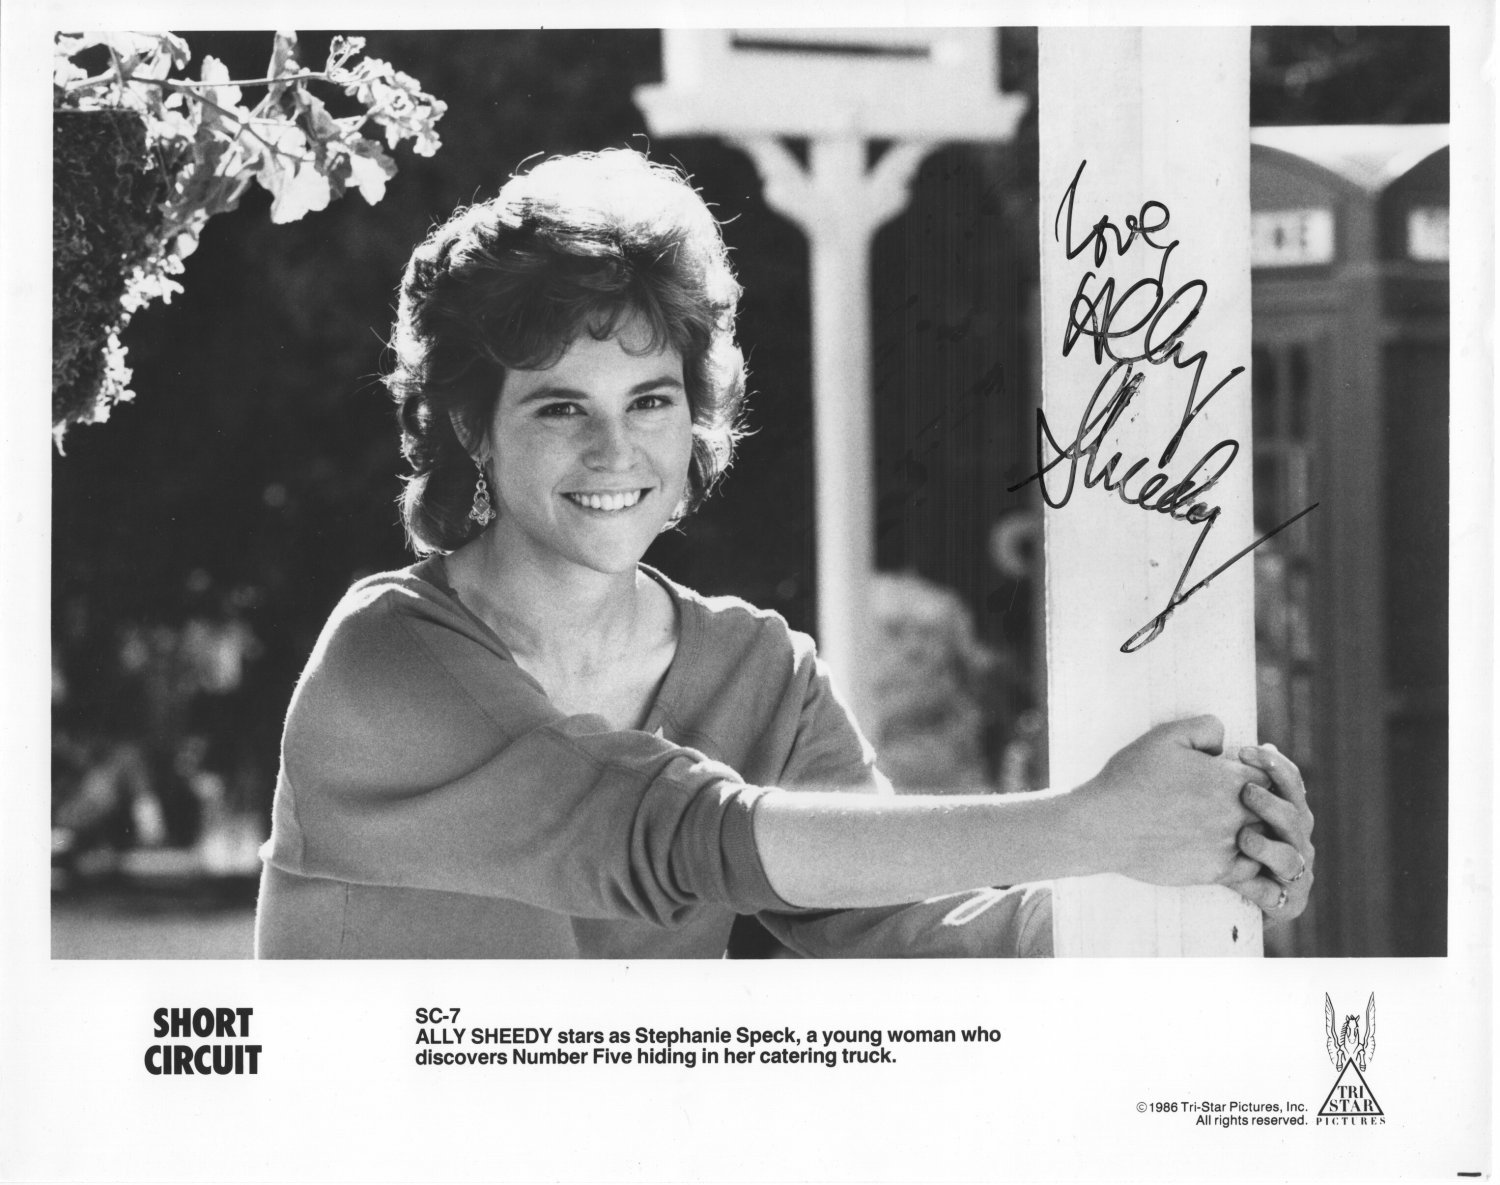 ALLY SHEEDY - OUTSTANDING ACTRESS - SHORT CIRCUIT - HAND SIGNED AUTOGRAPHED PHOTO WITH COA